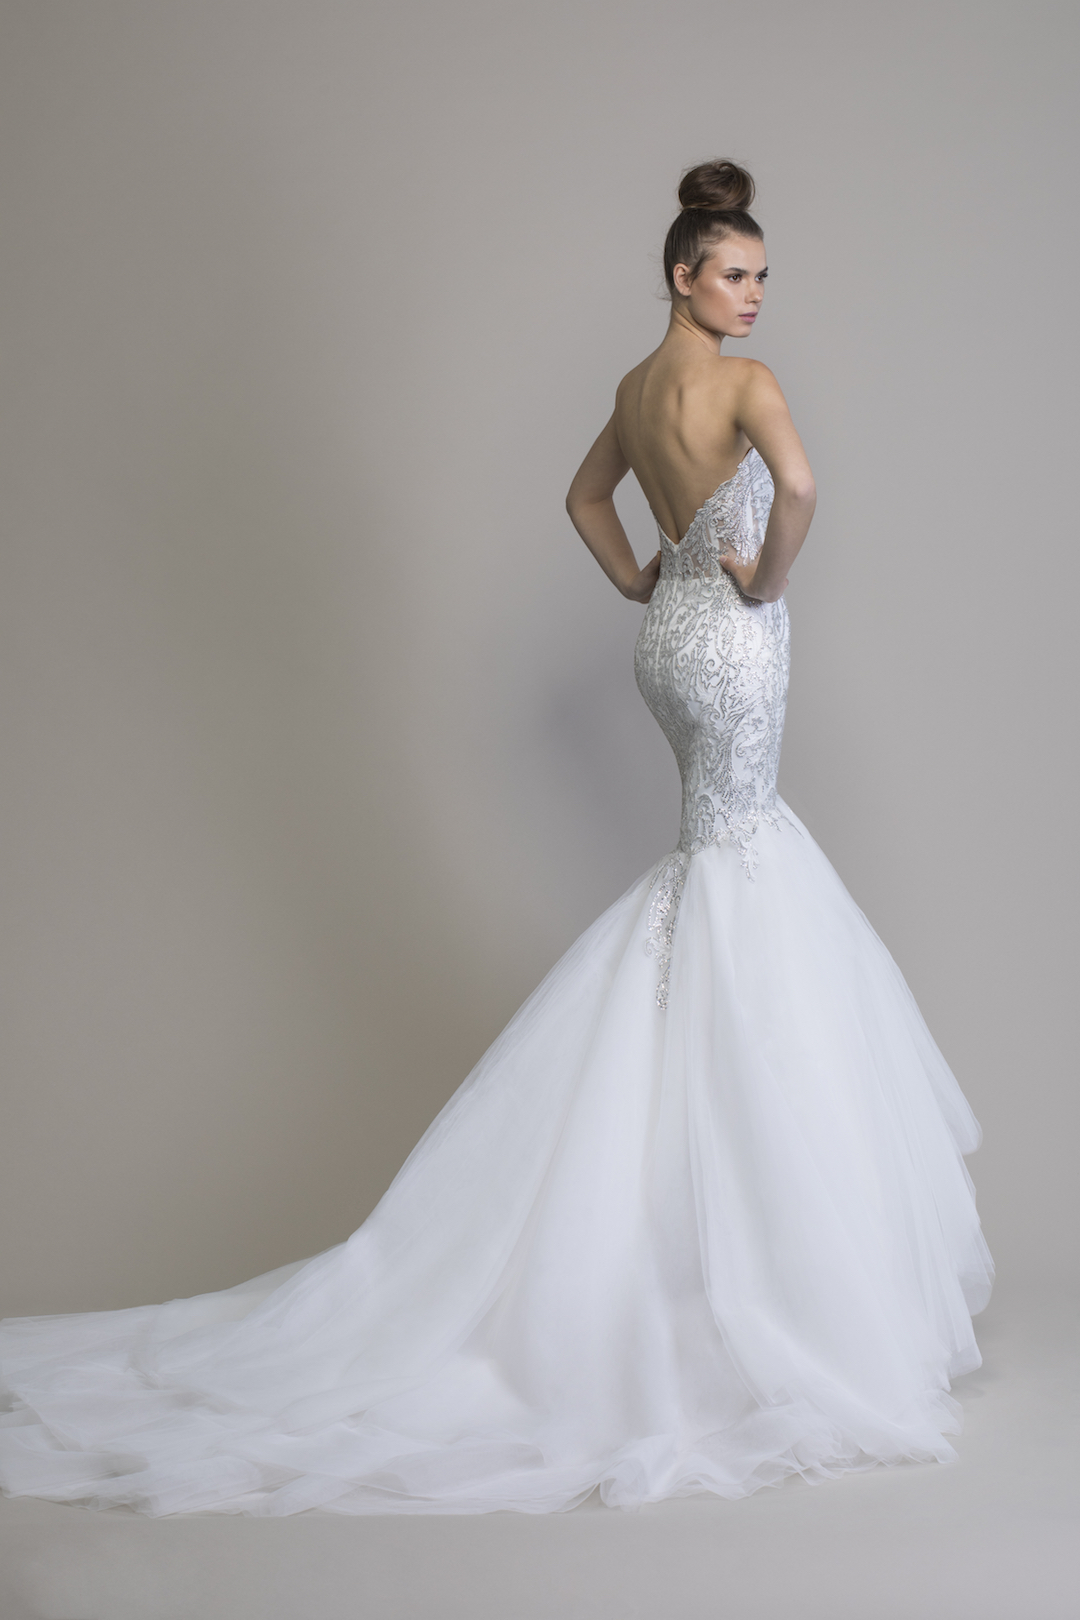 Pnina Tornai's new LOVE 2020 Collection is out! This is style 14758